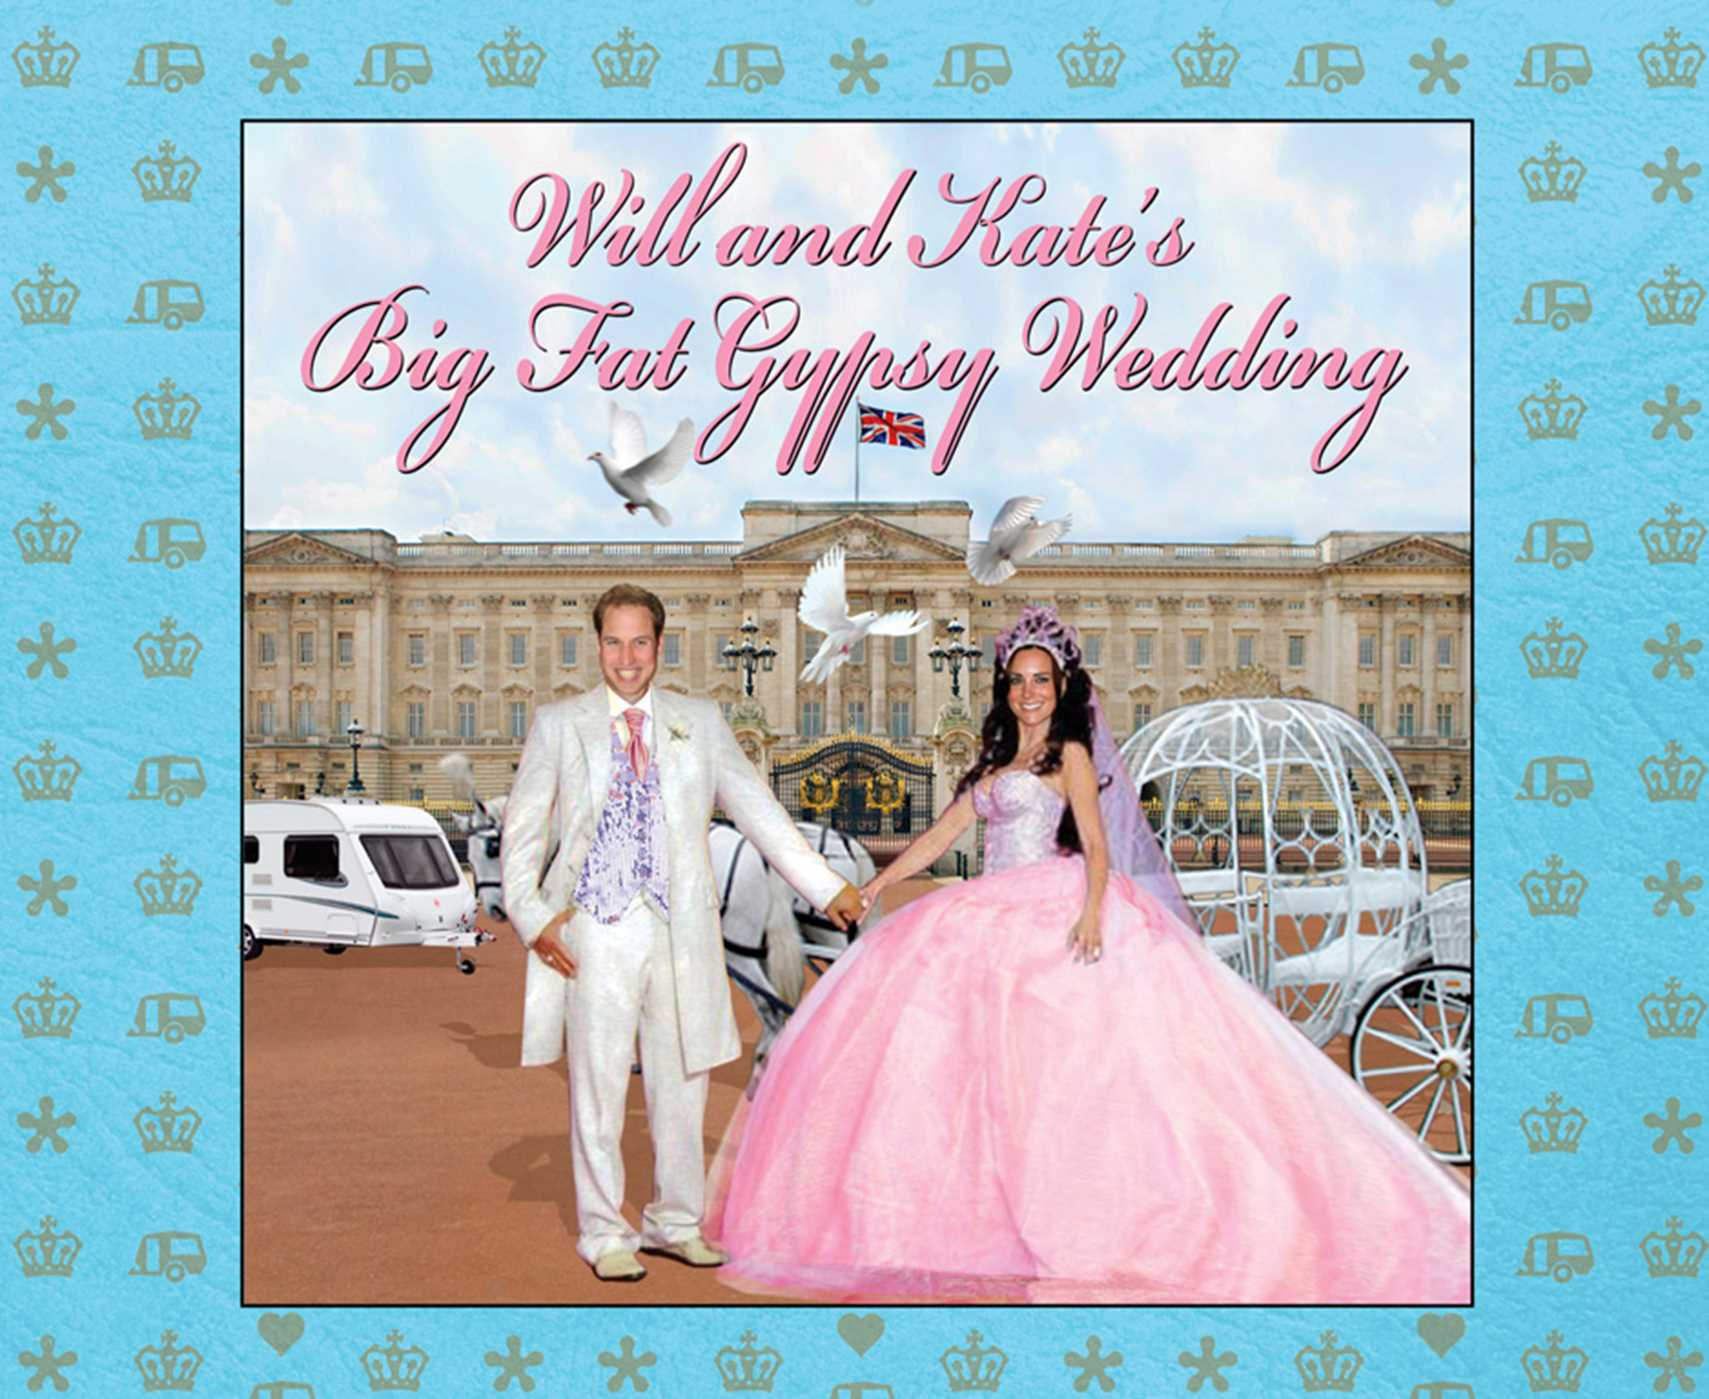 Will-and-kates-big-fat-gypsy-wedding-9780857208002_hr